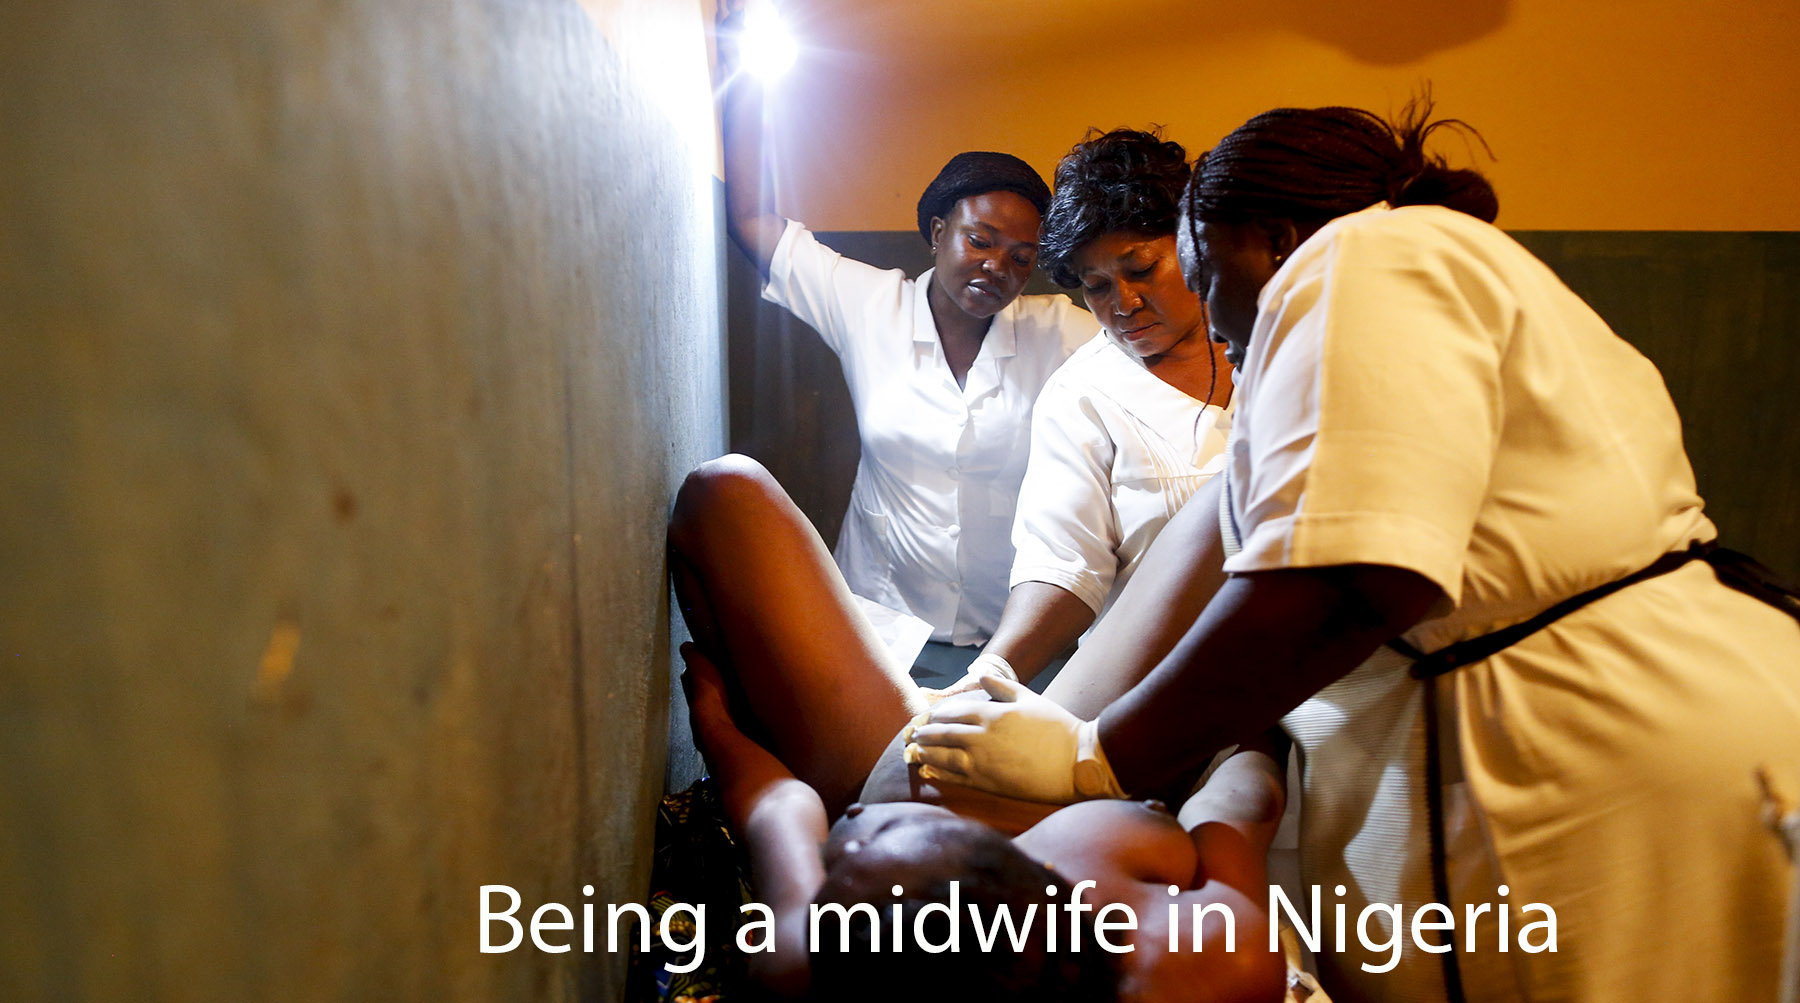 Being a midwife in Nigeria